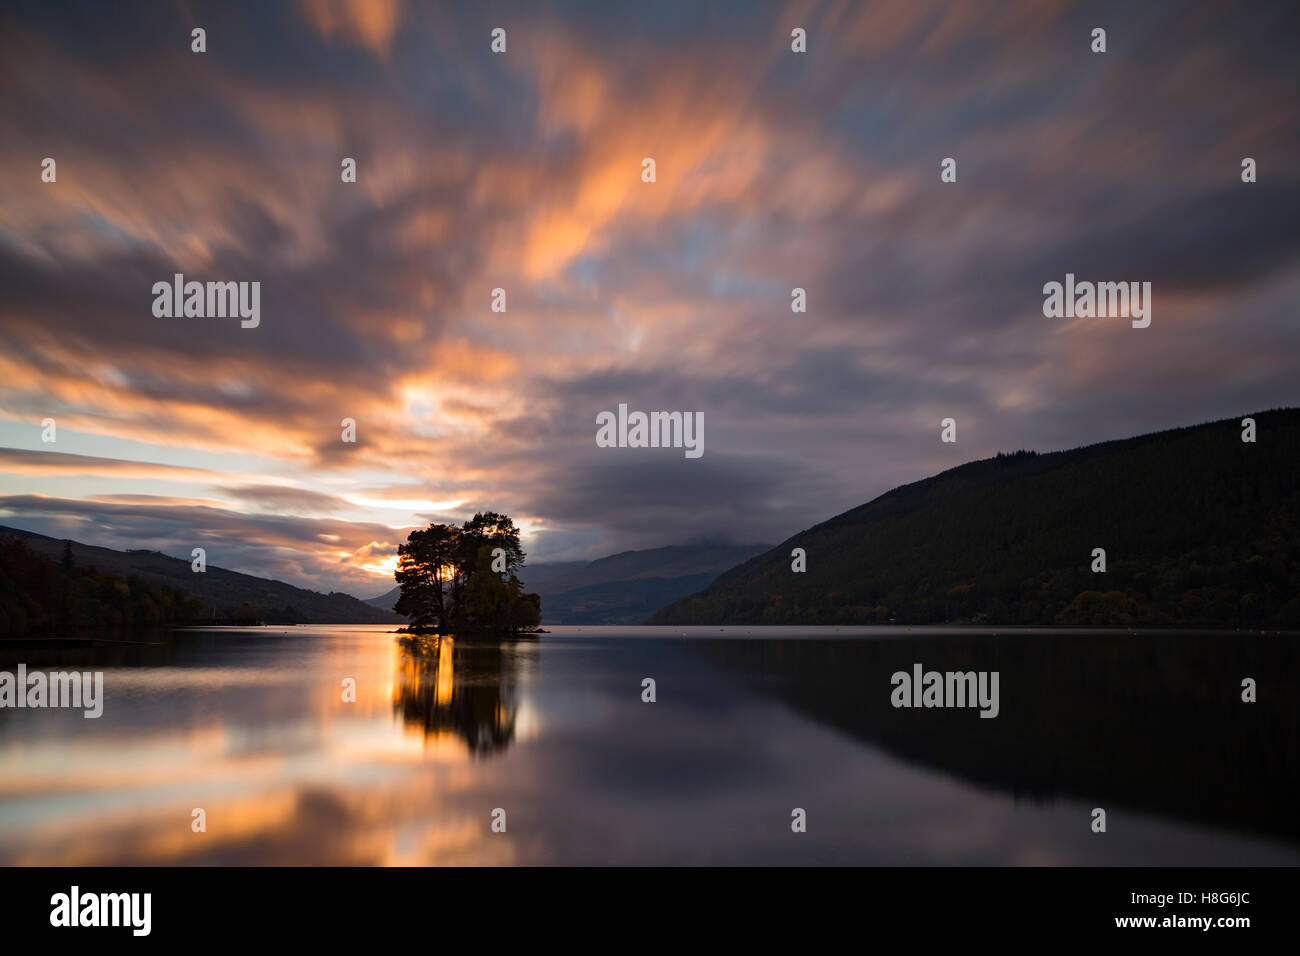 Loch Tay, Perthshire, Scotland, reflects the light from the setting sun as it passes behind the trees on one of - Stock Image